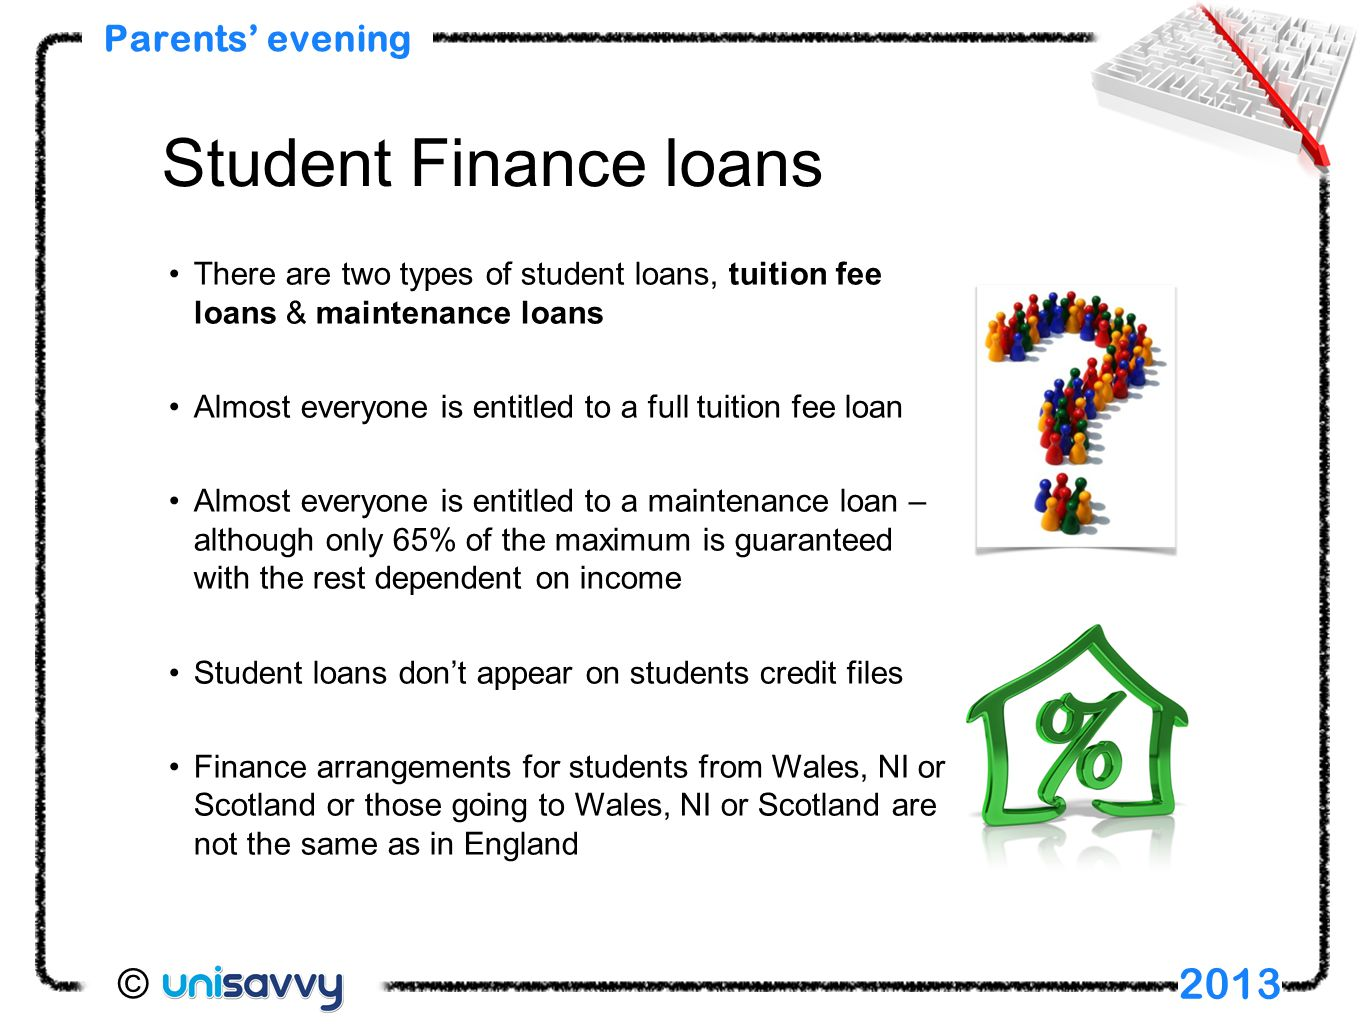 There are two types of student loans, tuition fee loans & maintenance loans Almost everyone is entitled to a full tuition fee loan Almost everyone is entitled to a maintenance loan – although only 65% of the maximum is guaranteed with the rest dependent on income Student loans don't appear on students credit files Finance arrangements for students from Wales, NI or Scotland or those going to Wales, NI or Scotland are not the same as in England Parents' evening 2013 Student Finance loans